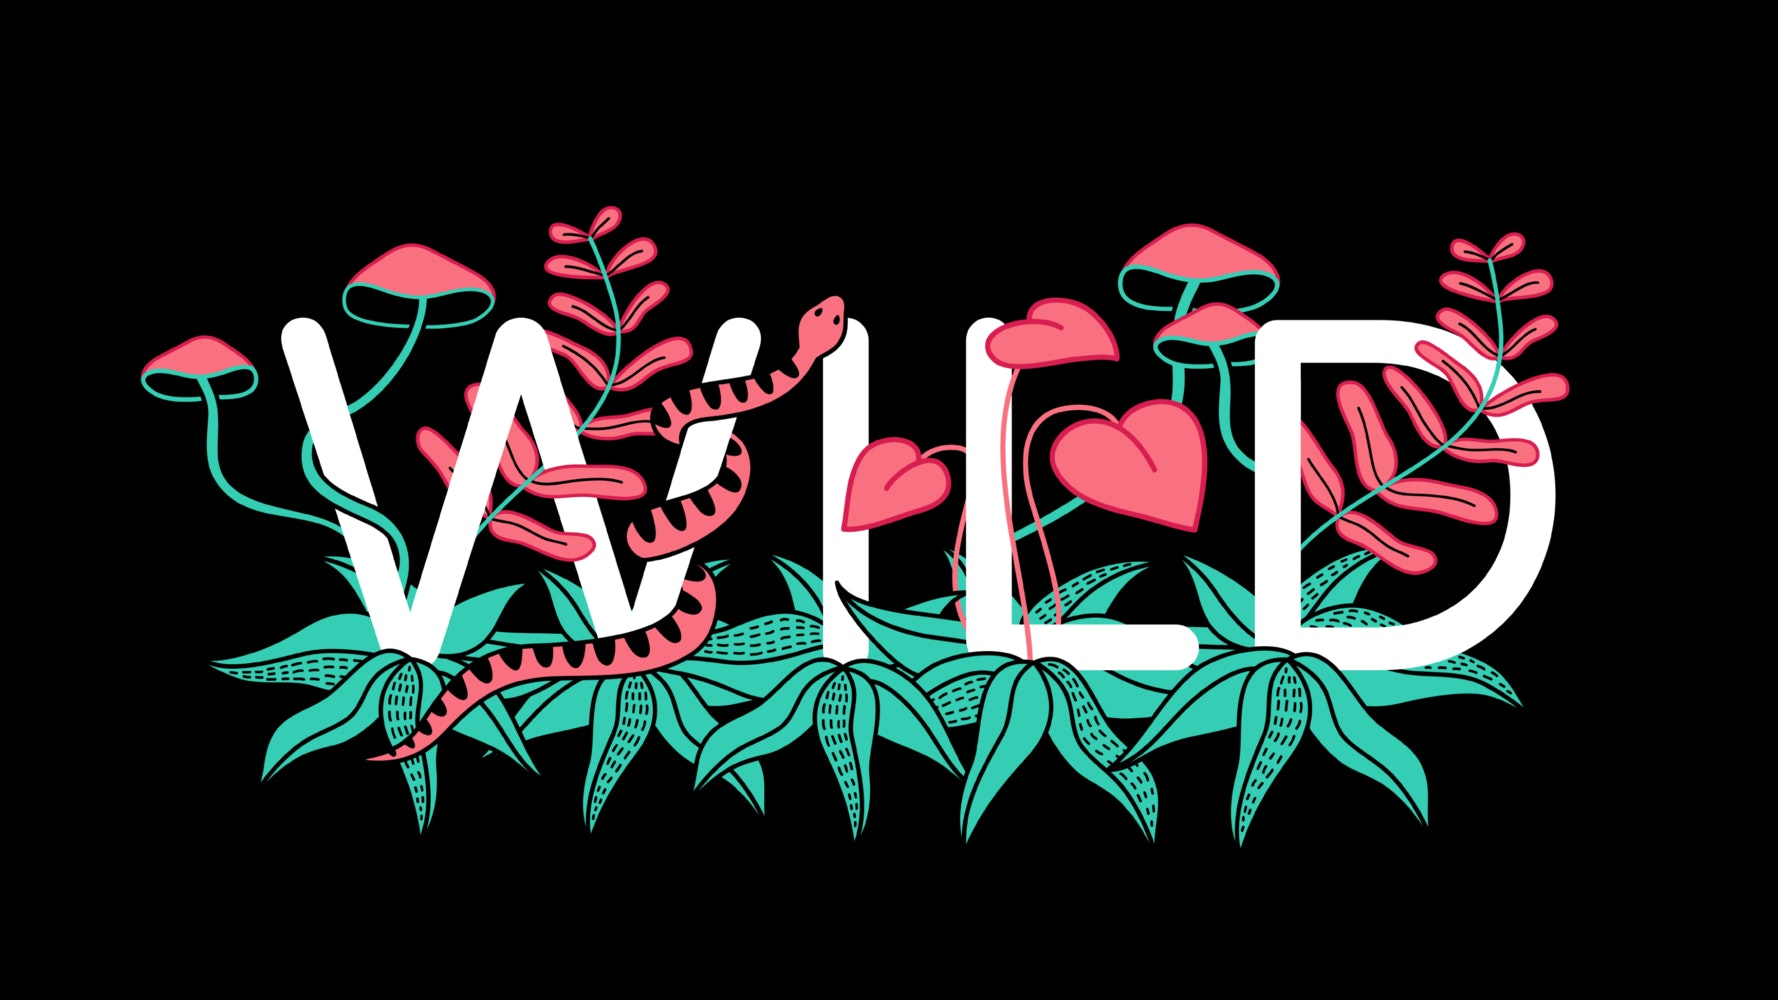 The word Wild with a snake and bright plants winding through the letters